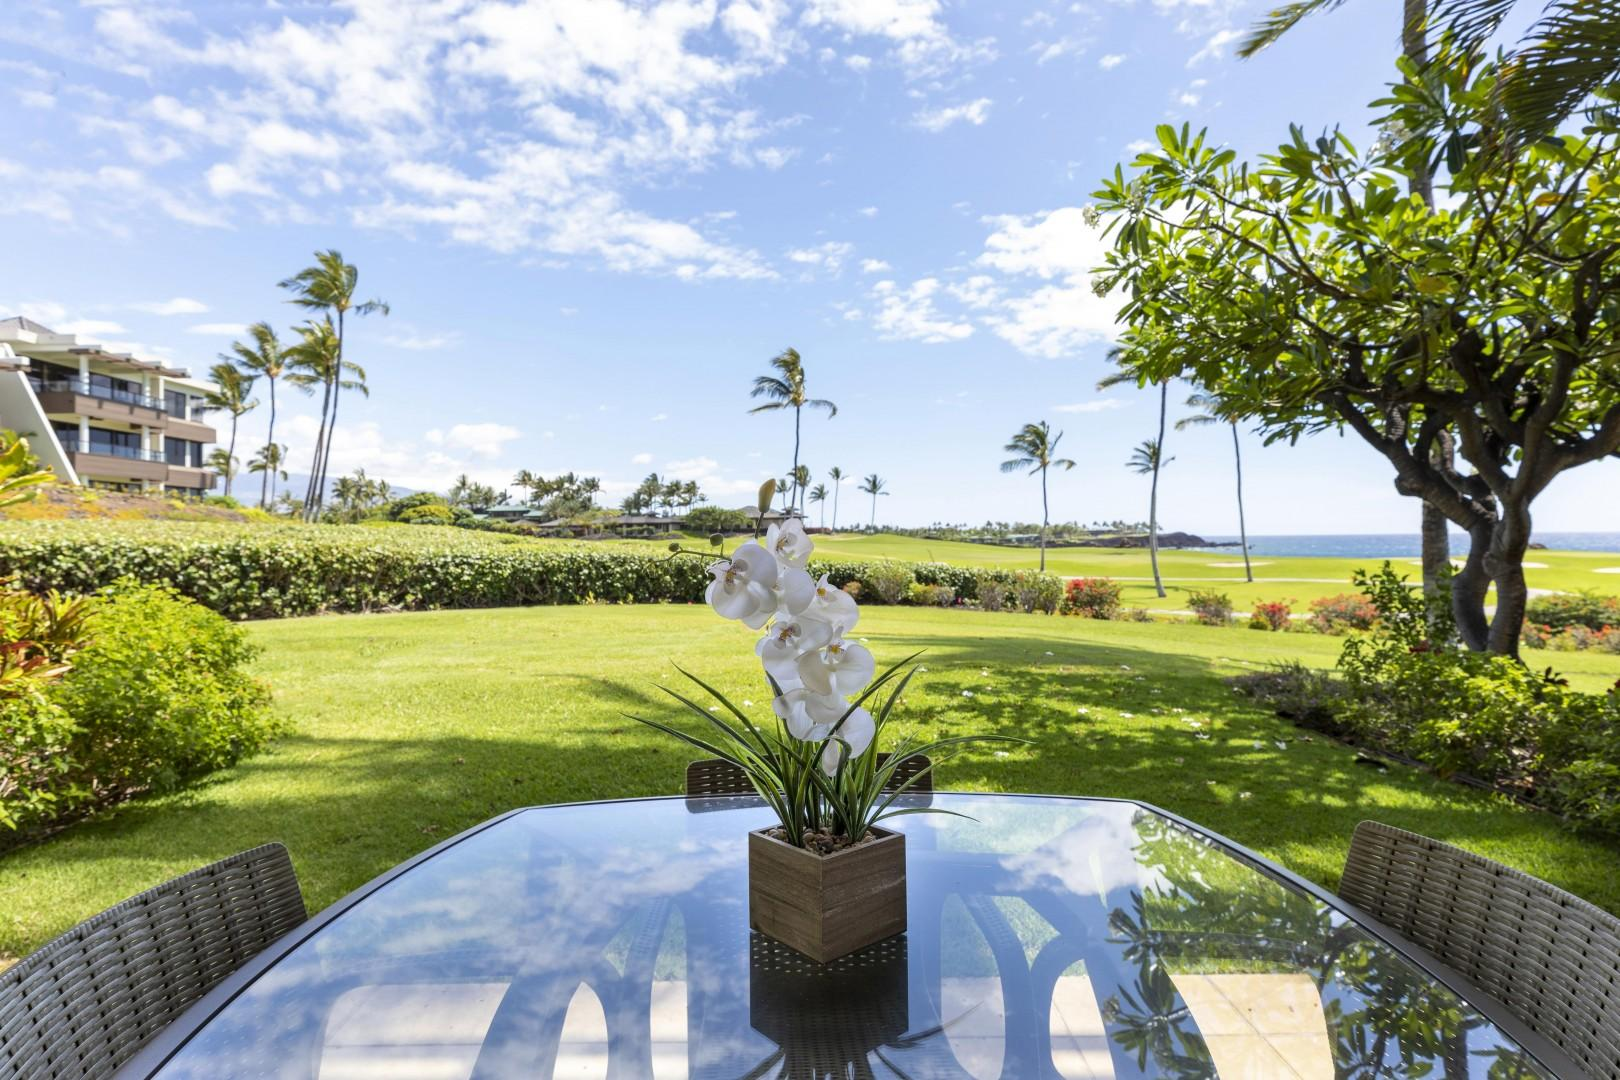 Relax and your private lanai gazing out to the ocean views.